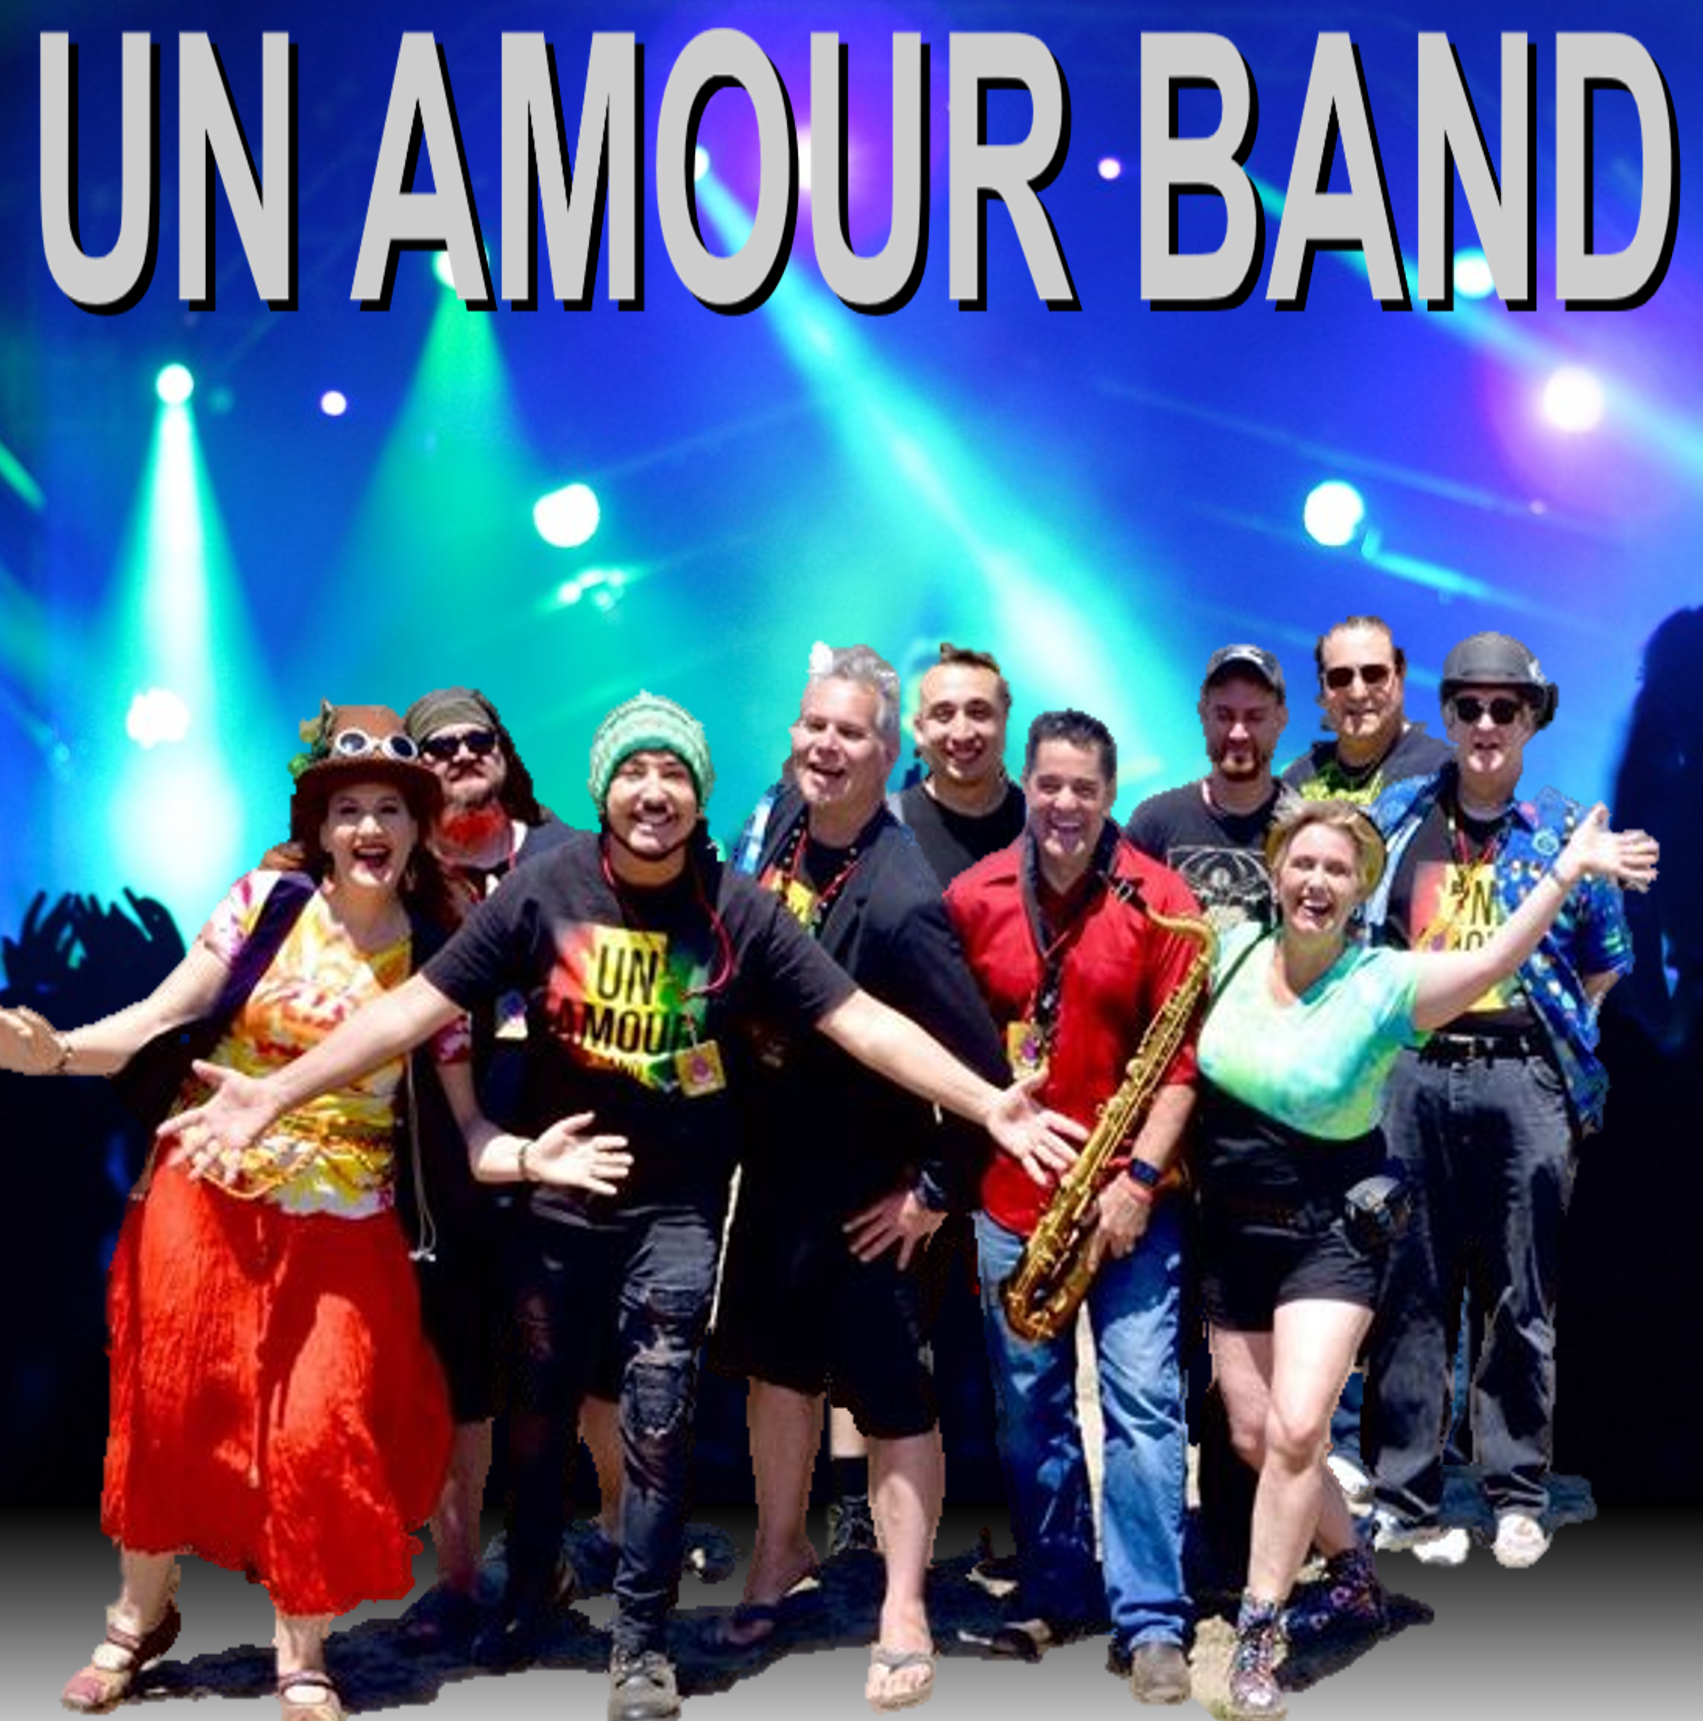 UnAmourBand_Lights